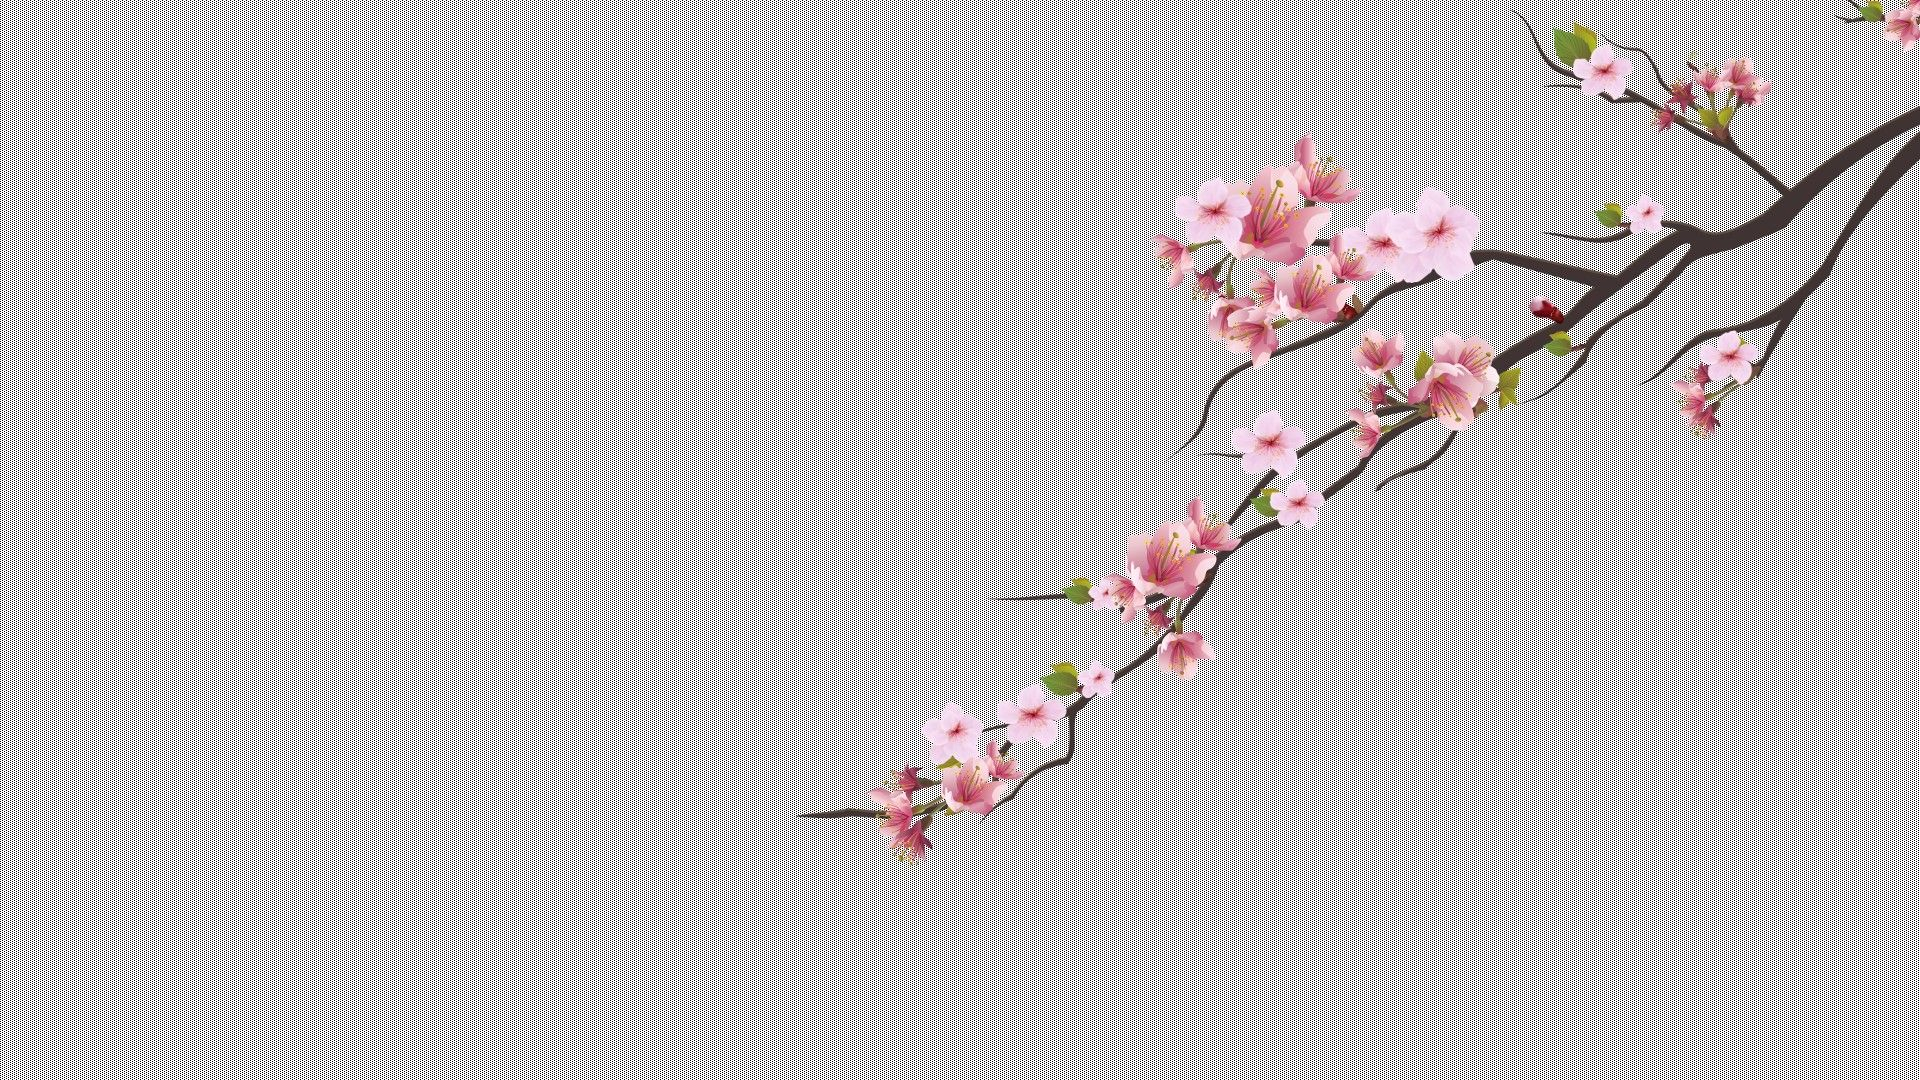 Download Hd Wallpapers Of Cherry Trees, Cherry Blossom, Minimalism,